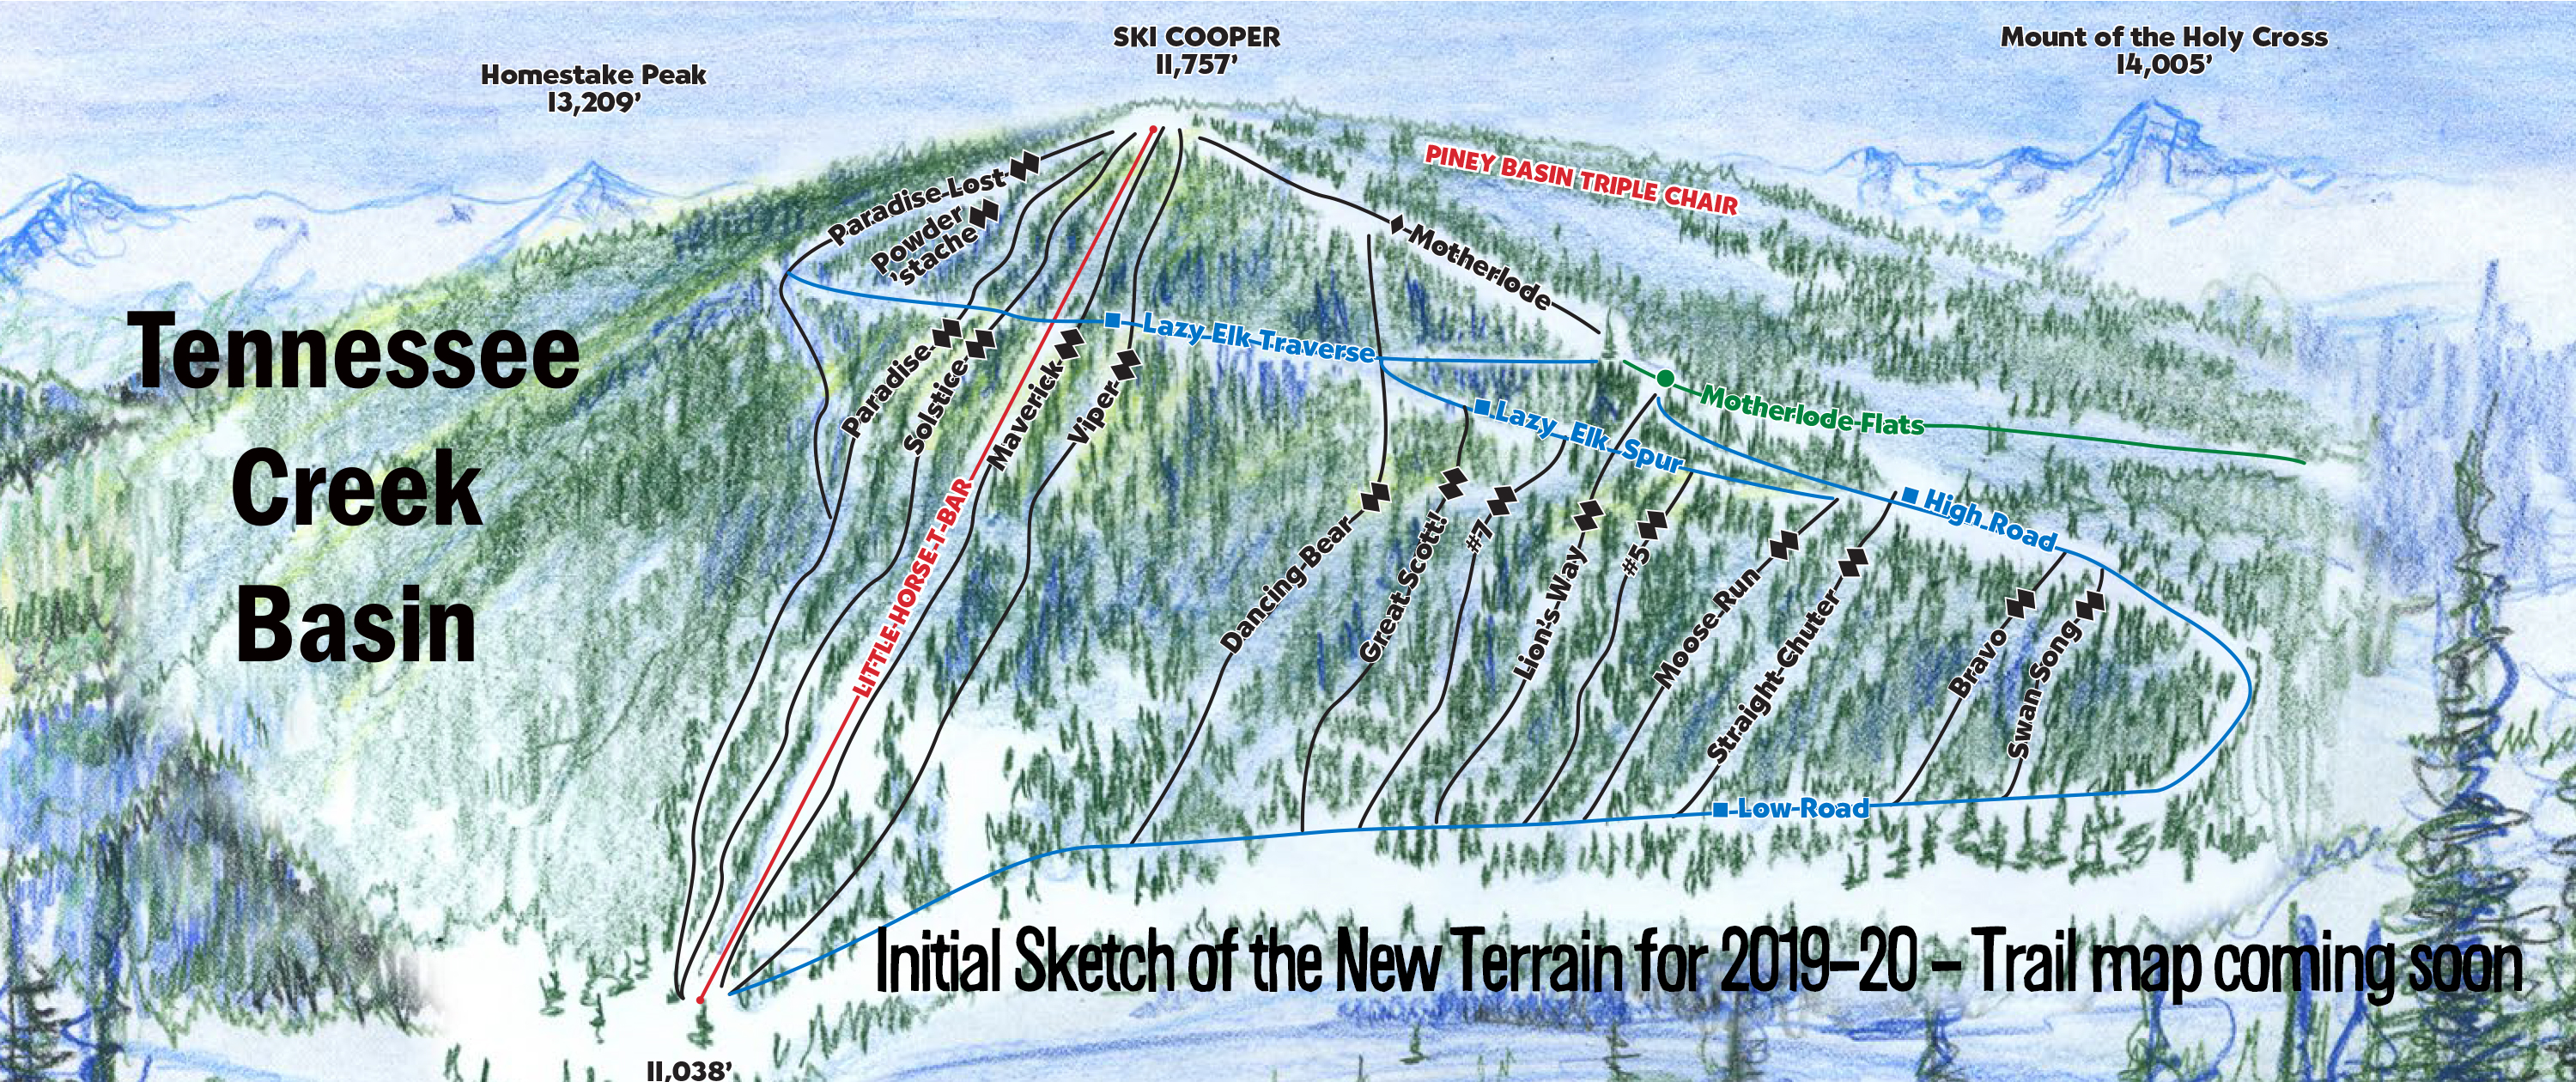 Sketch of the new terrain